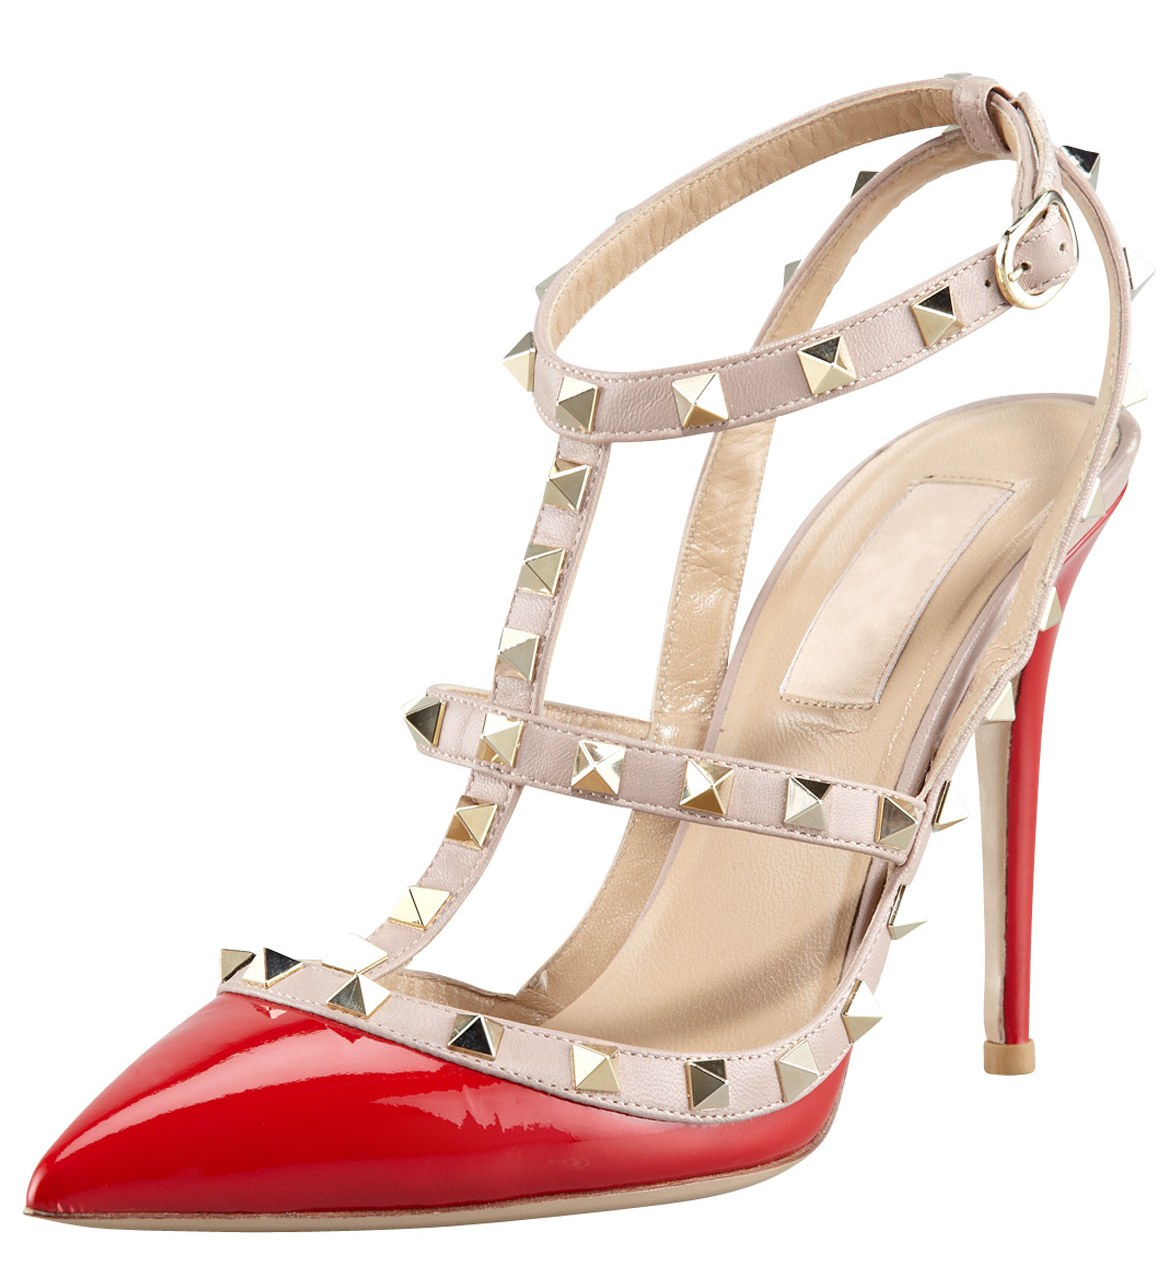 Womens High Heel Shoes Fashion Great Designer High Heels From